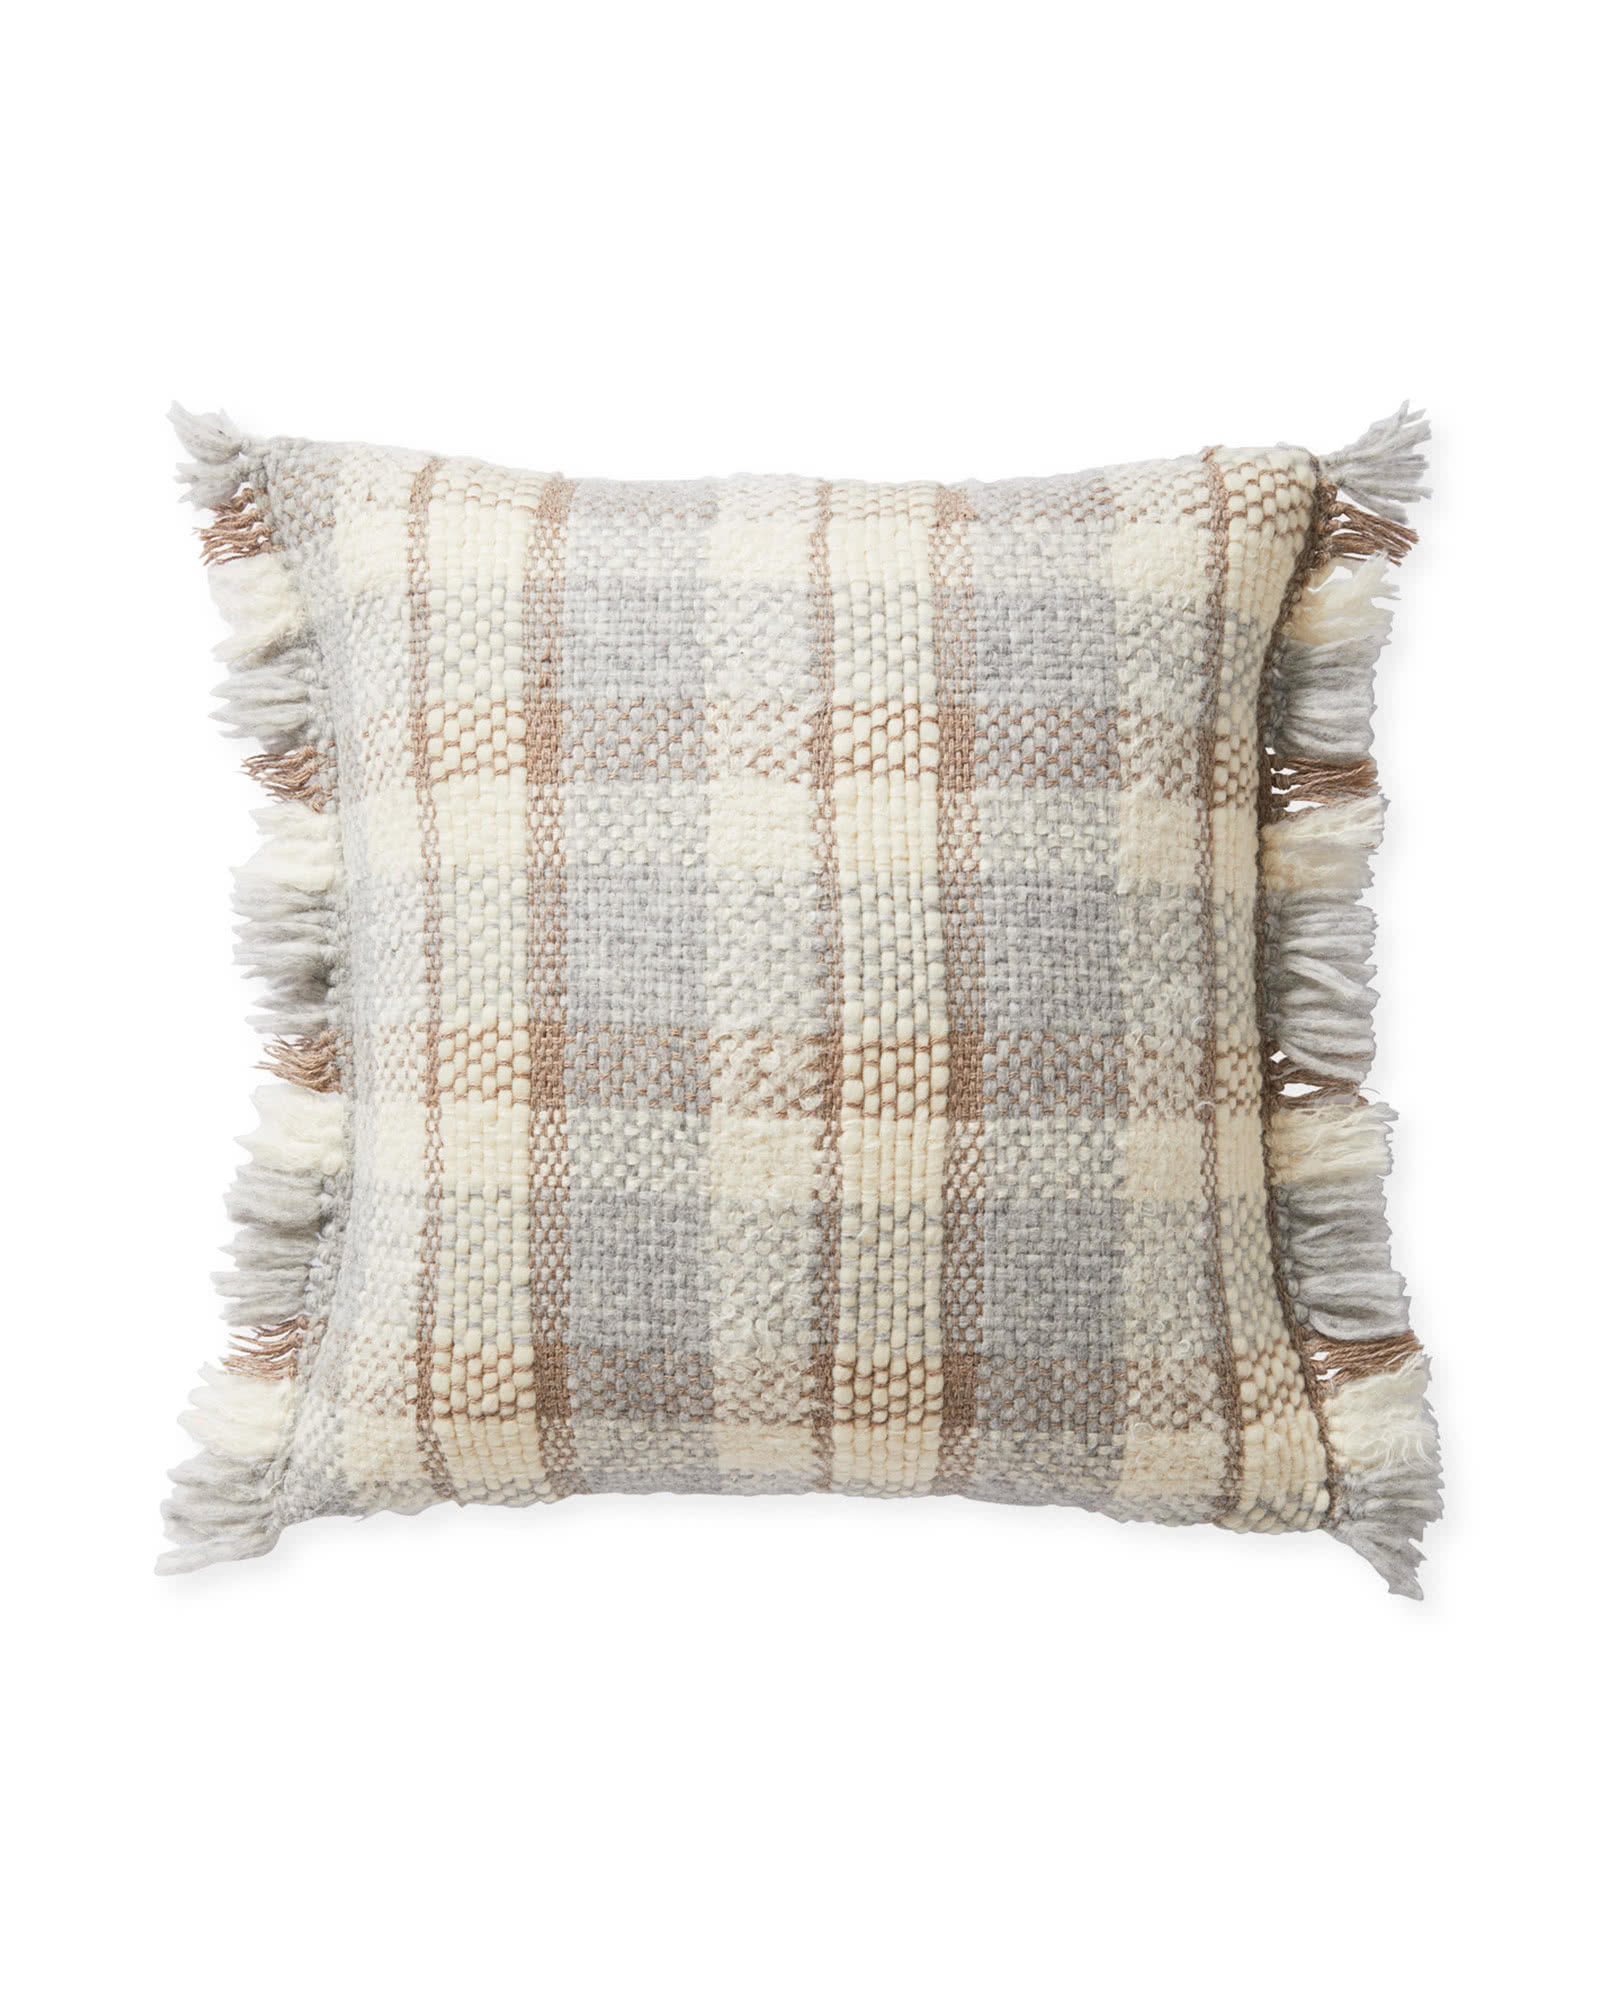 Silverlake Pillow Cover, Sand